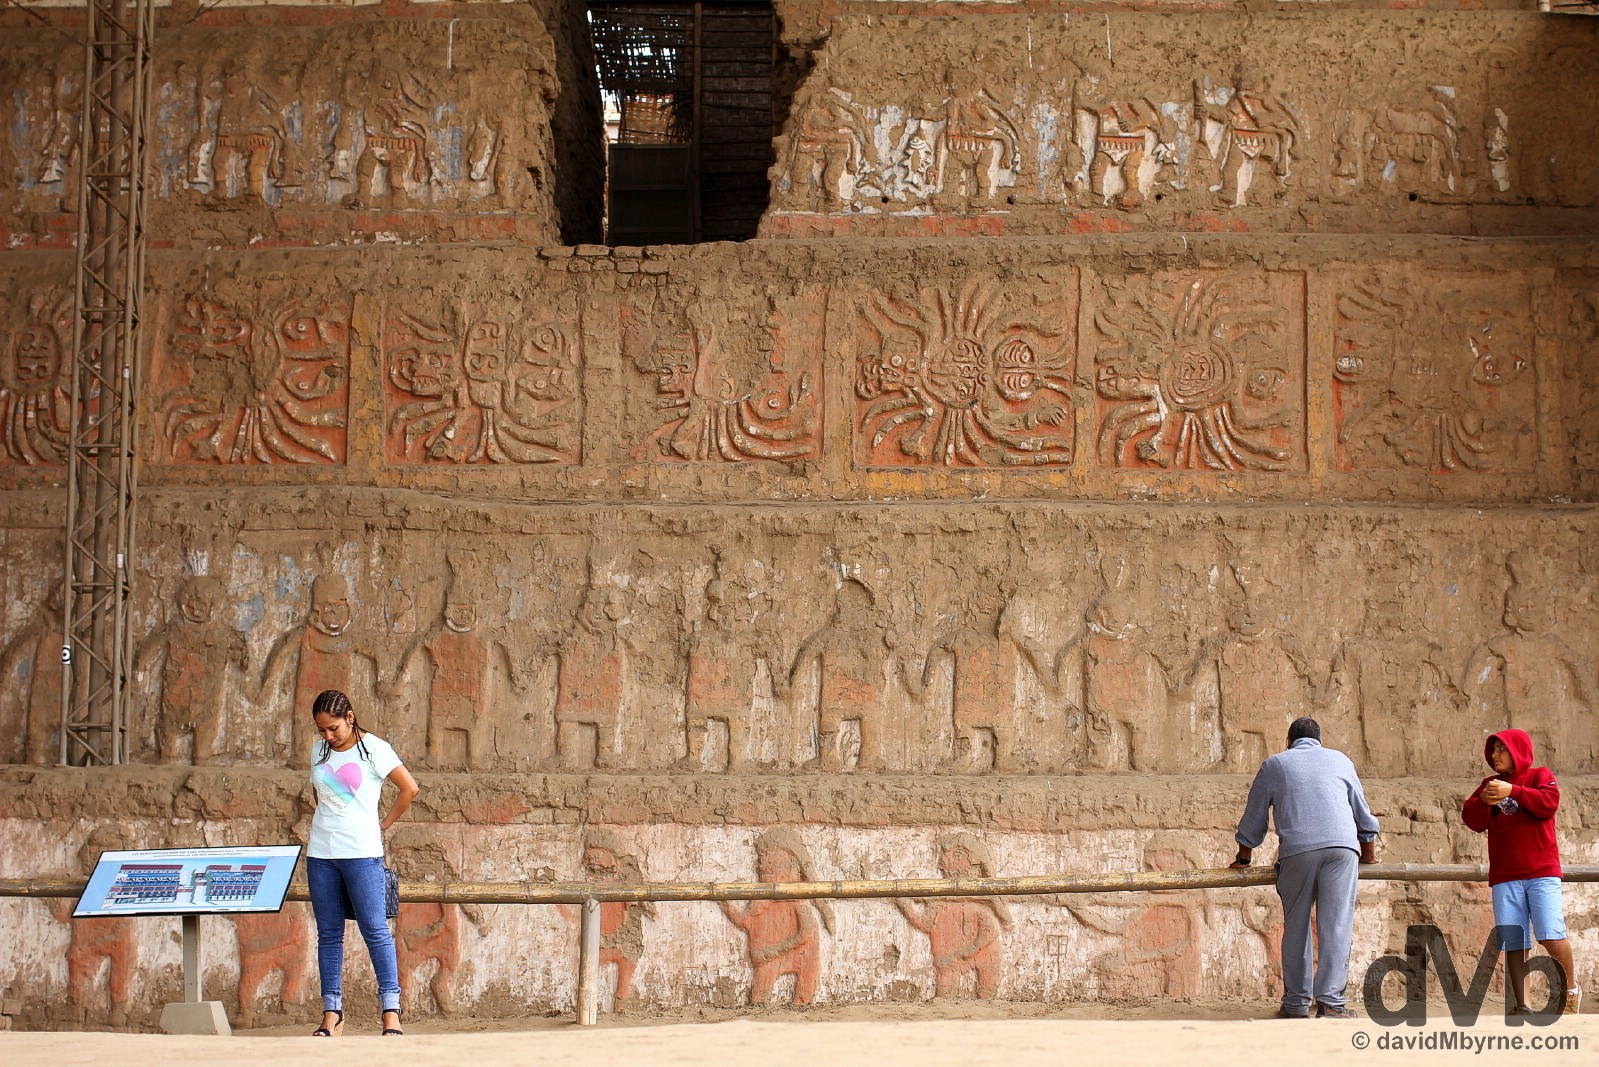 Adobe murals on the 7-tier north face of the Old Temple of Huaca de la Luna (Temple of the Moon), Moche, northwestern Peru. August 1, 2015.